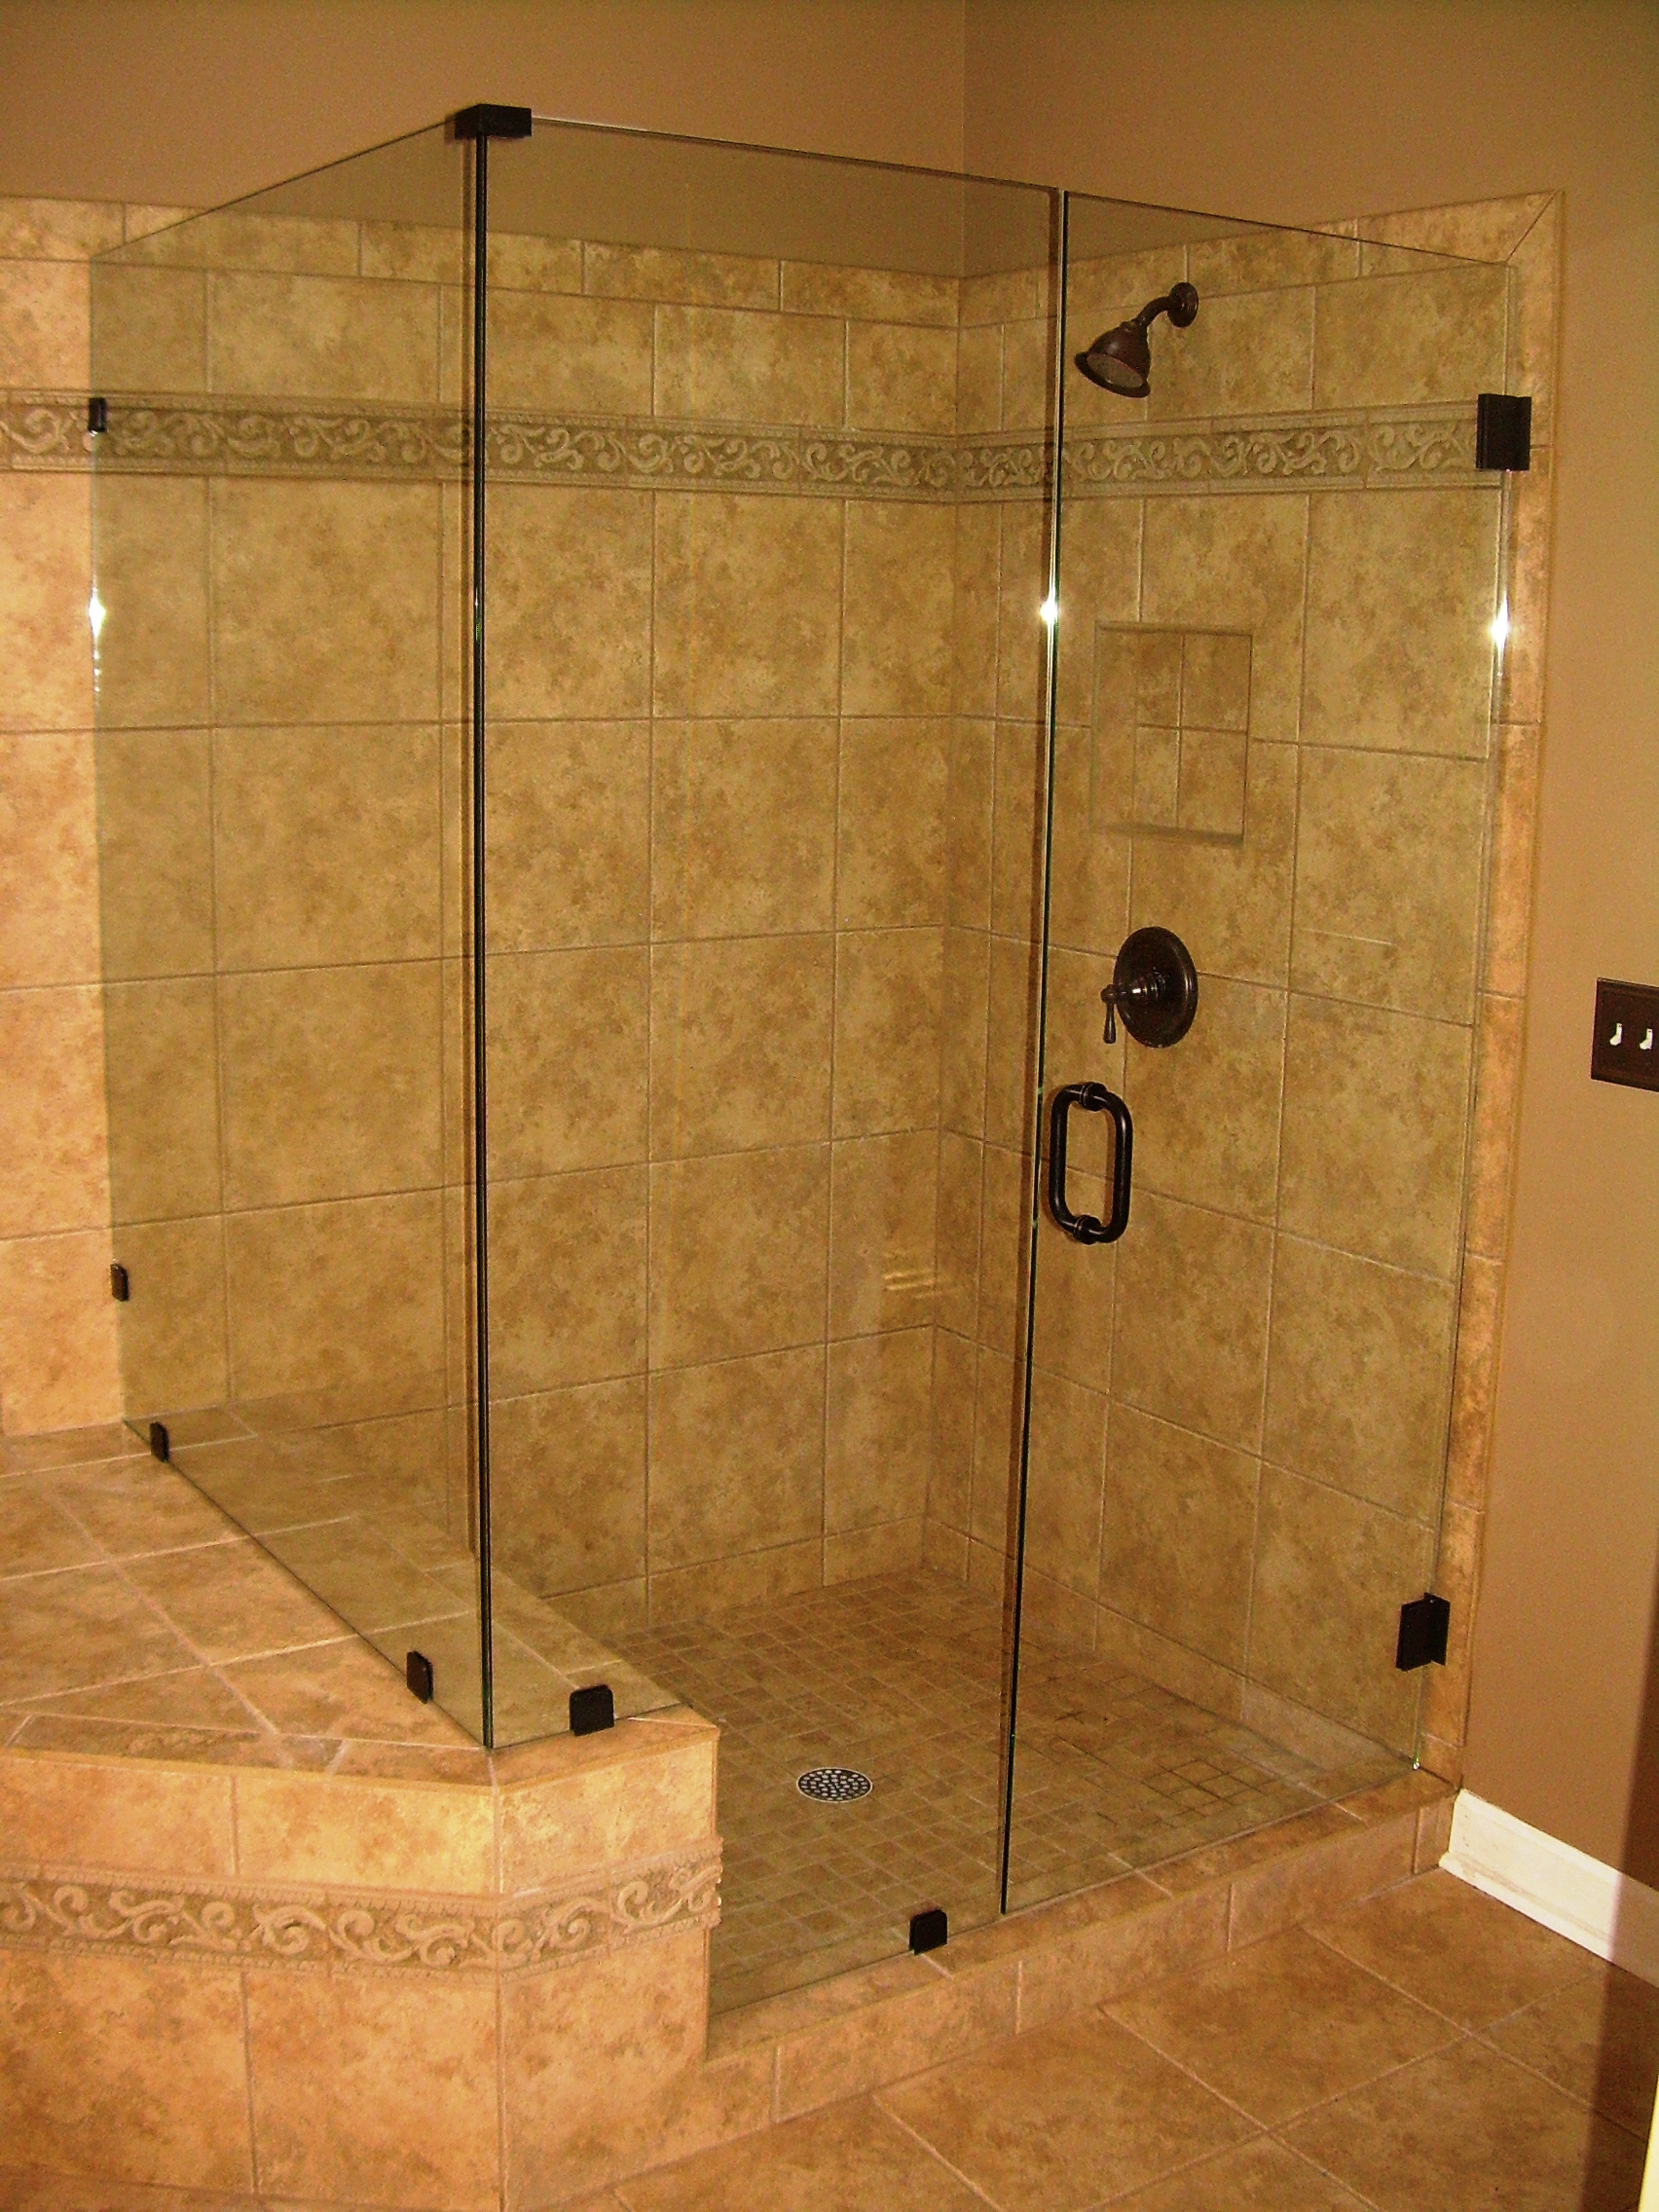 Shower enclosures by lbg lemonbay glass mirror Tile shower stalls